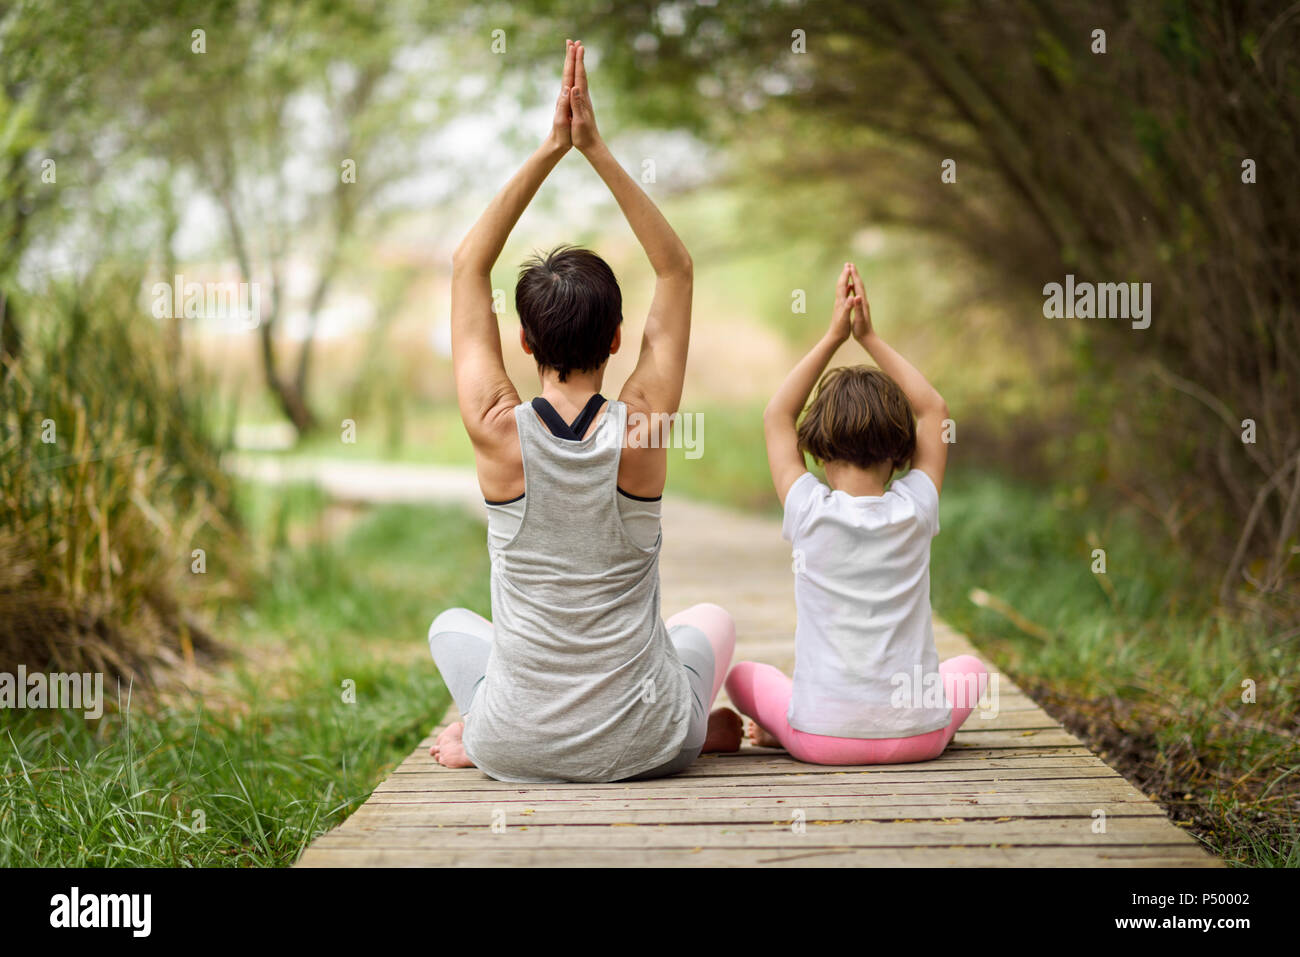 Rear view of mother and daughter doing yoga on boardwalk - Stock Image